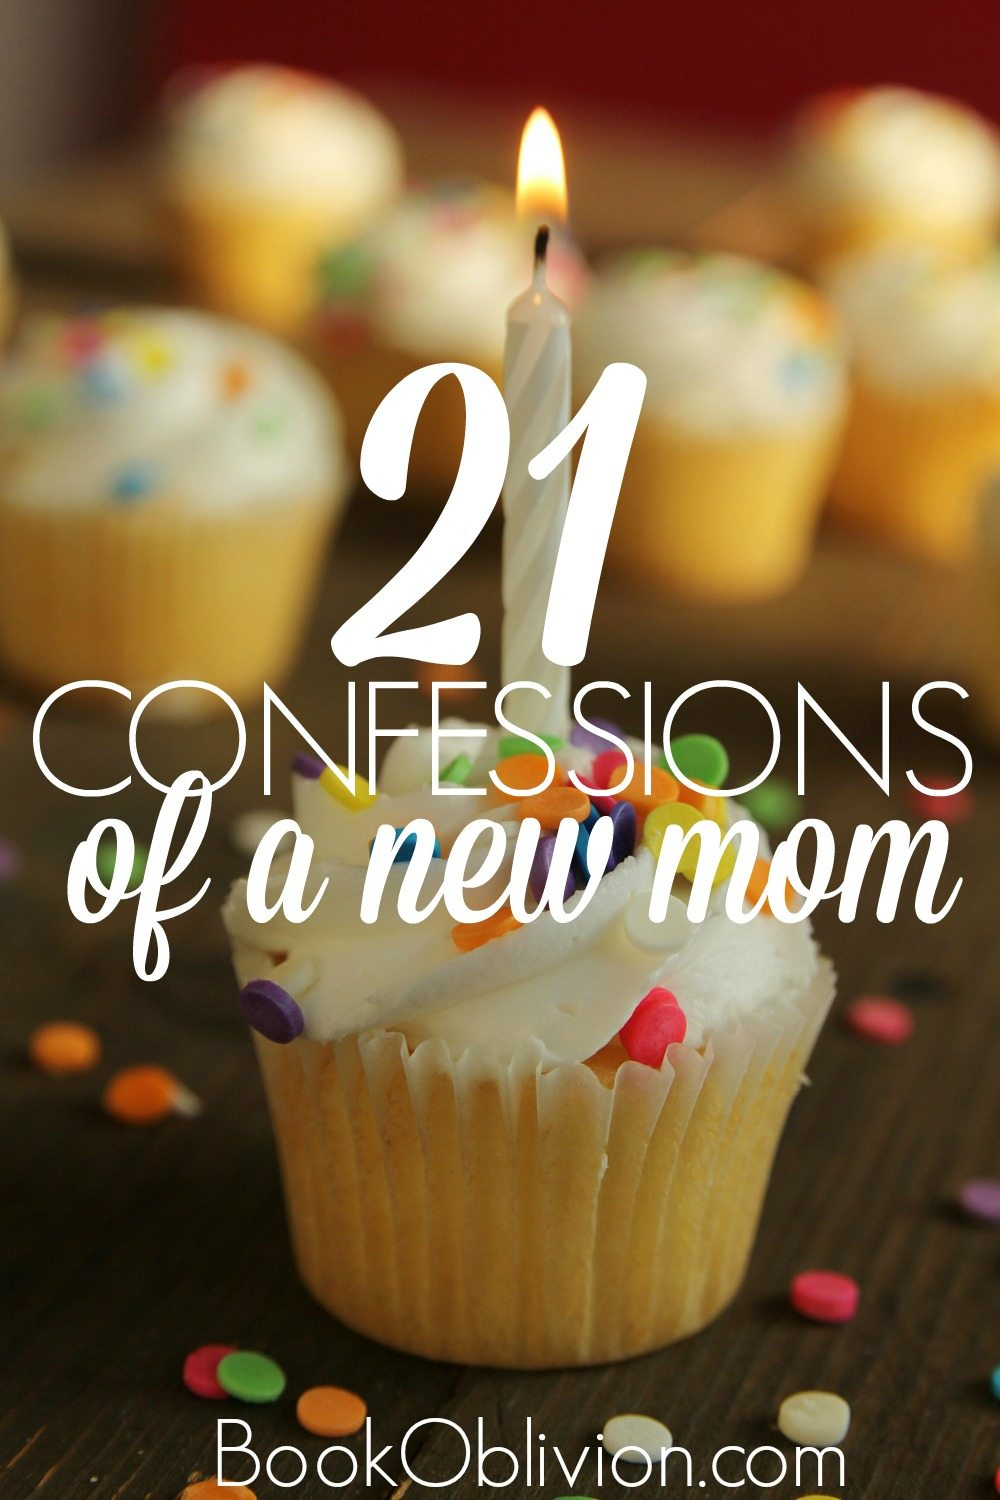 Here is a list of zombie fueled confessions from a new mom on her son\'s first birthday that will make you feel normal. Be sure to watch the video of the bonus confession, but please don\'t call CPS ;-)